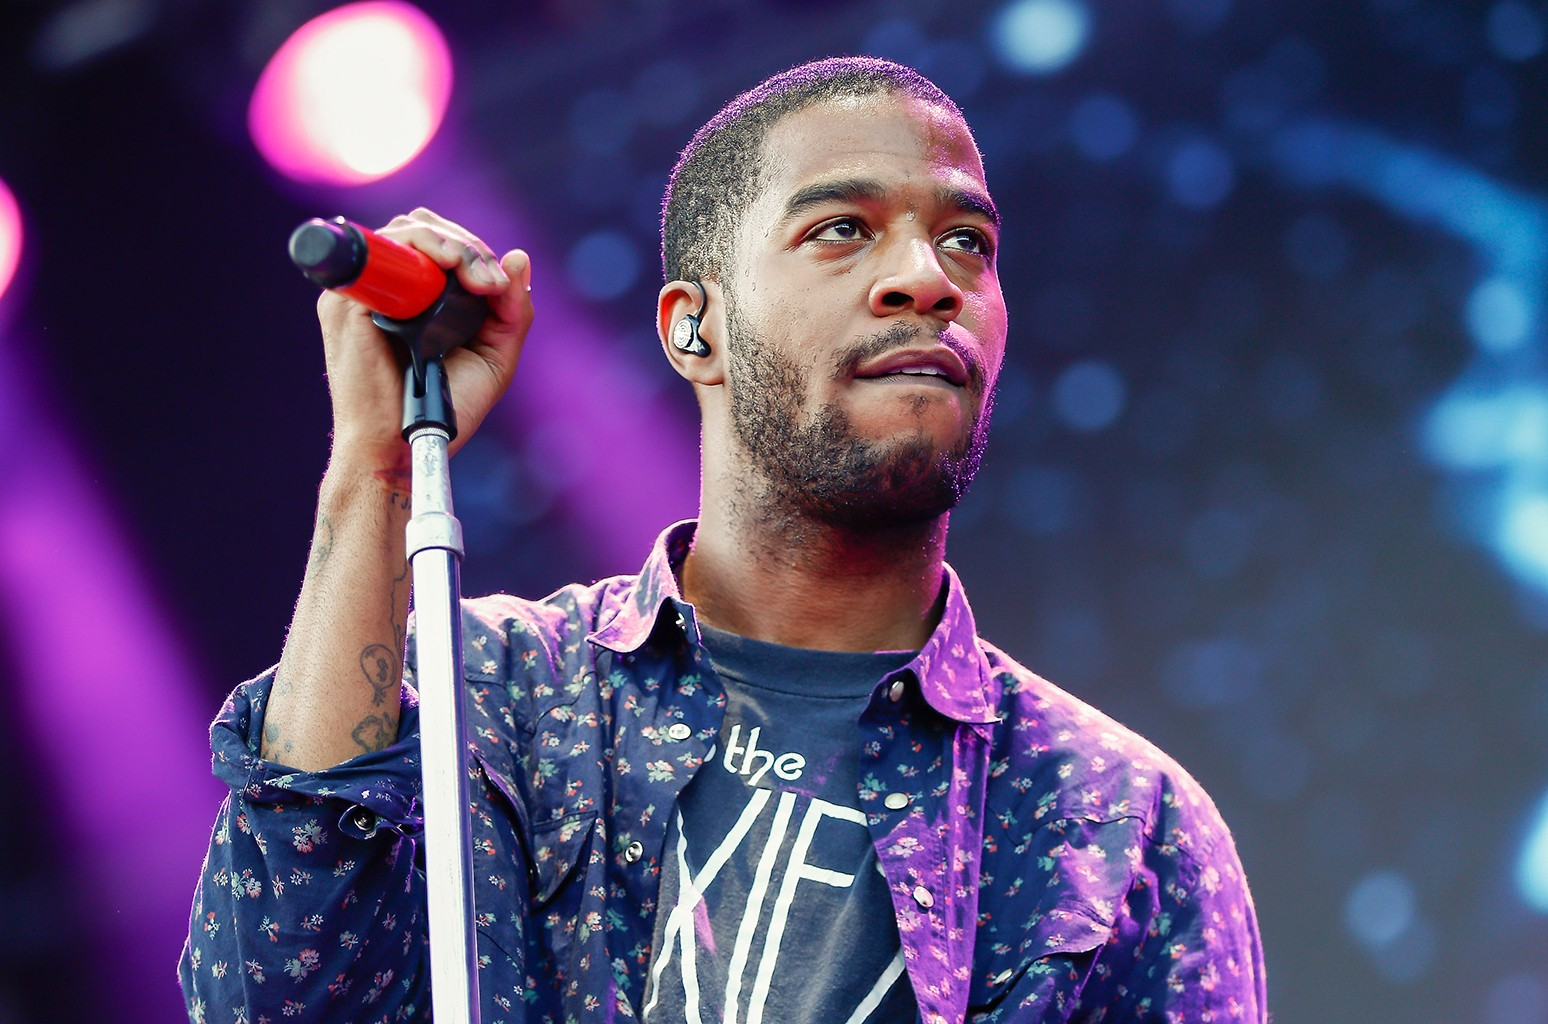 Kid Cudi performs at 2015 Lollapalooza